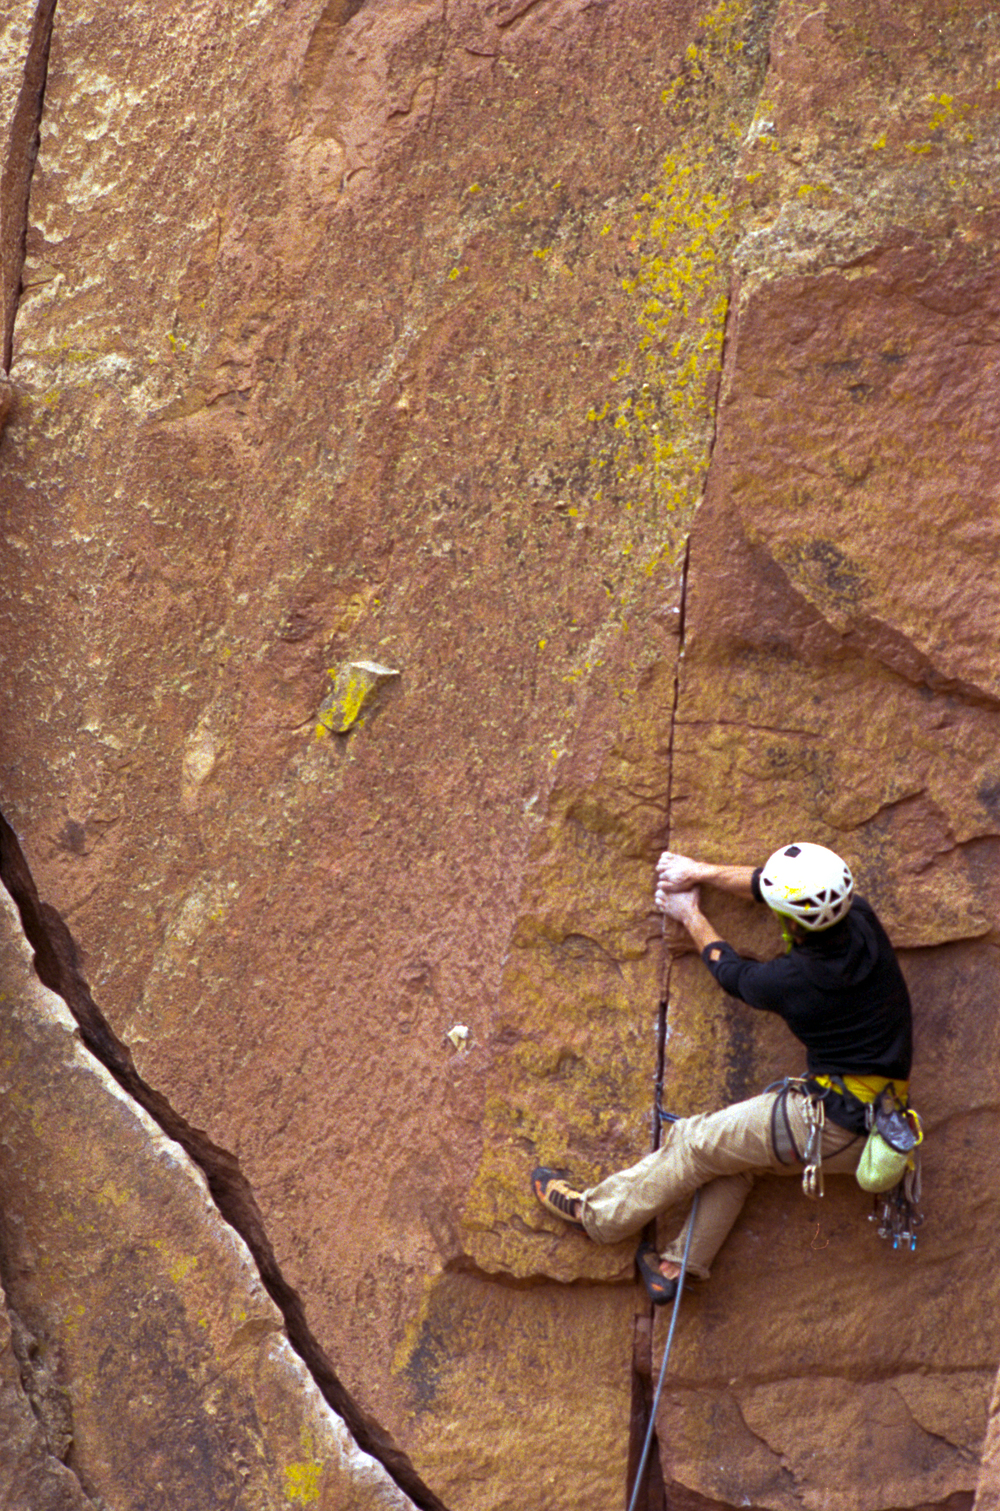 A climber displaying some great finger crack skills at Smith Rock.